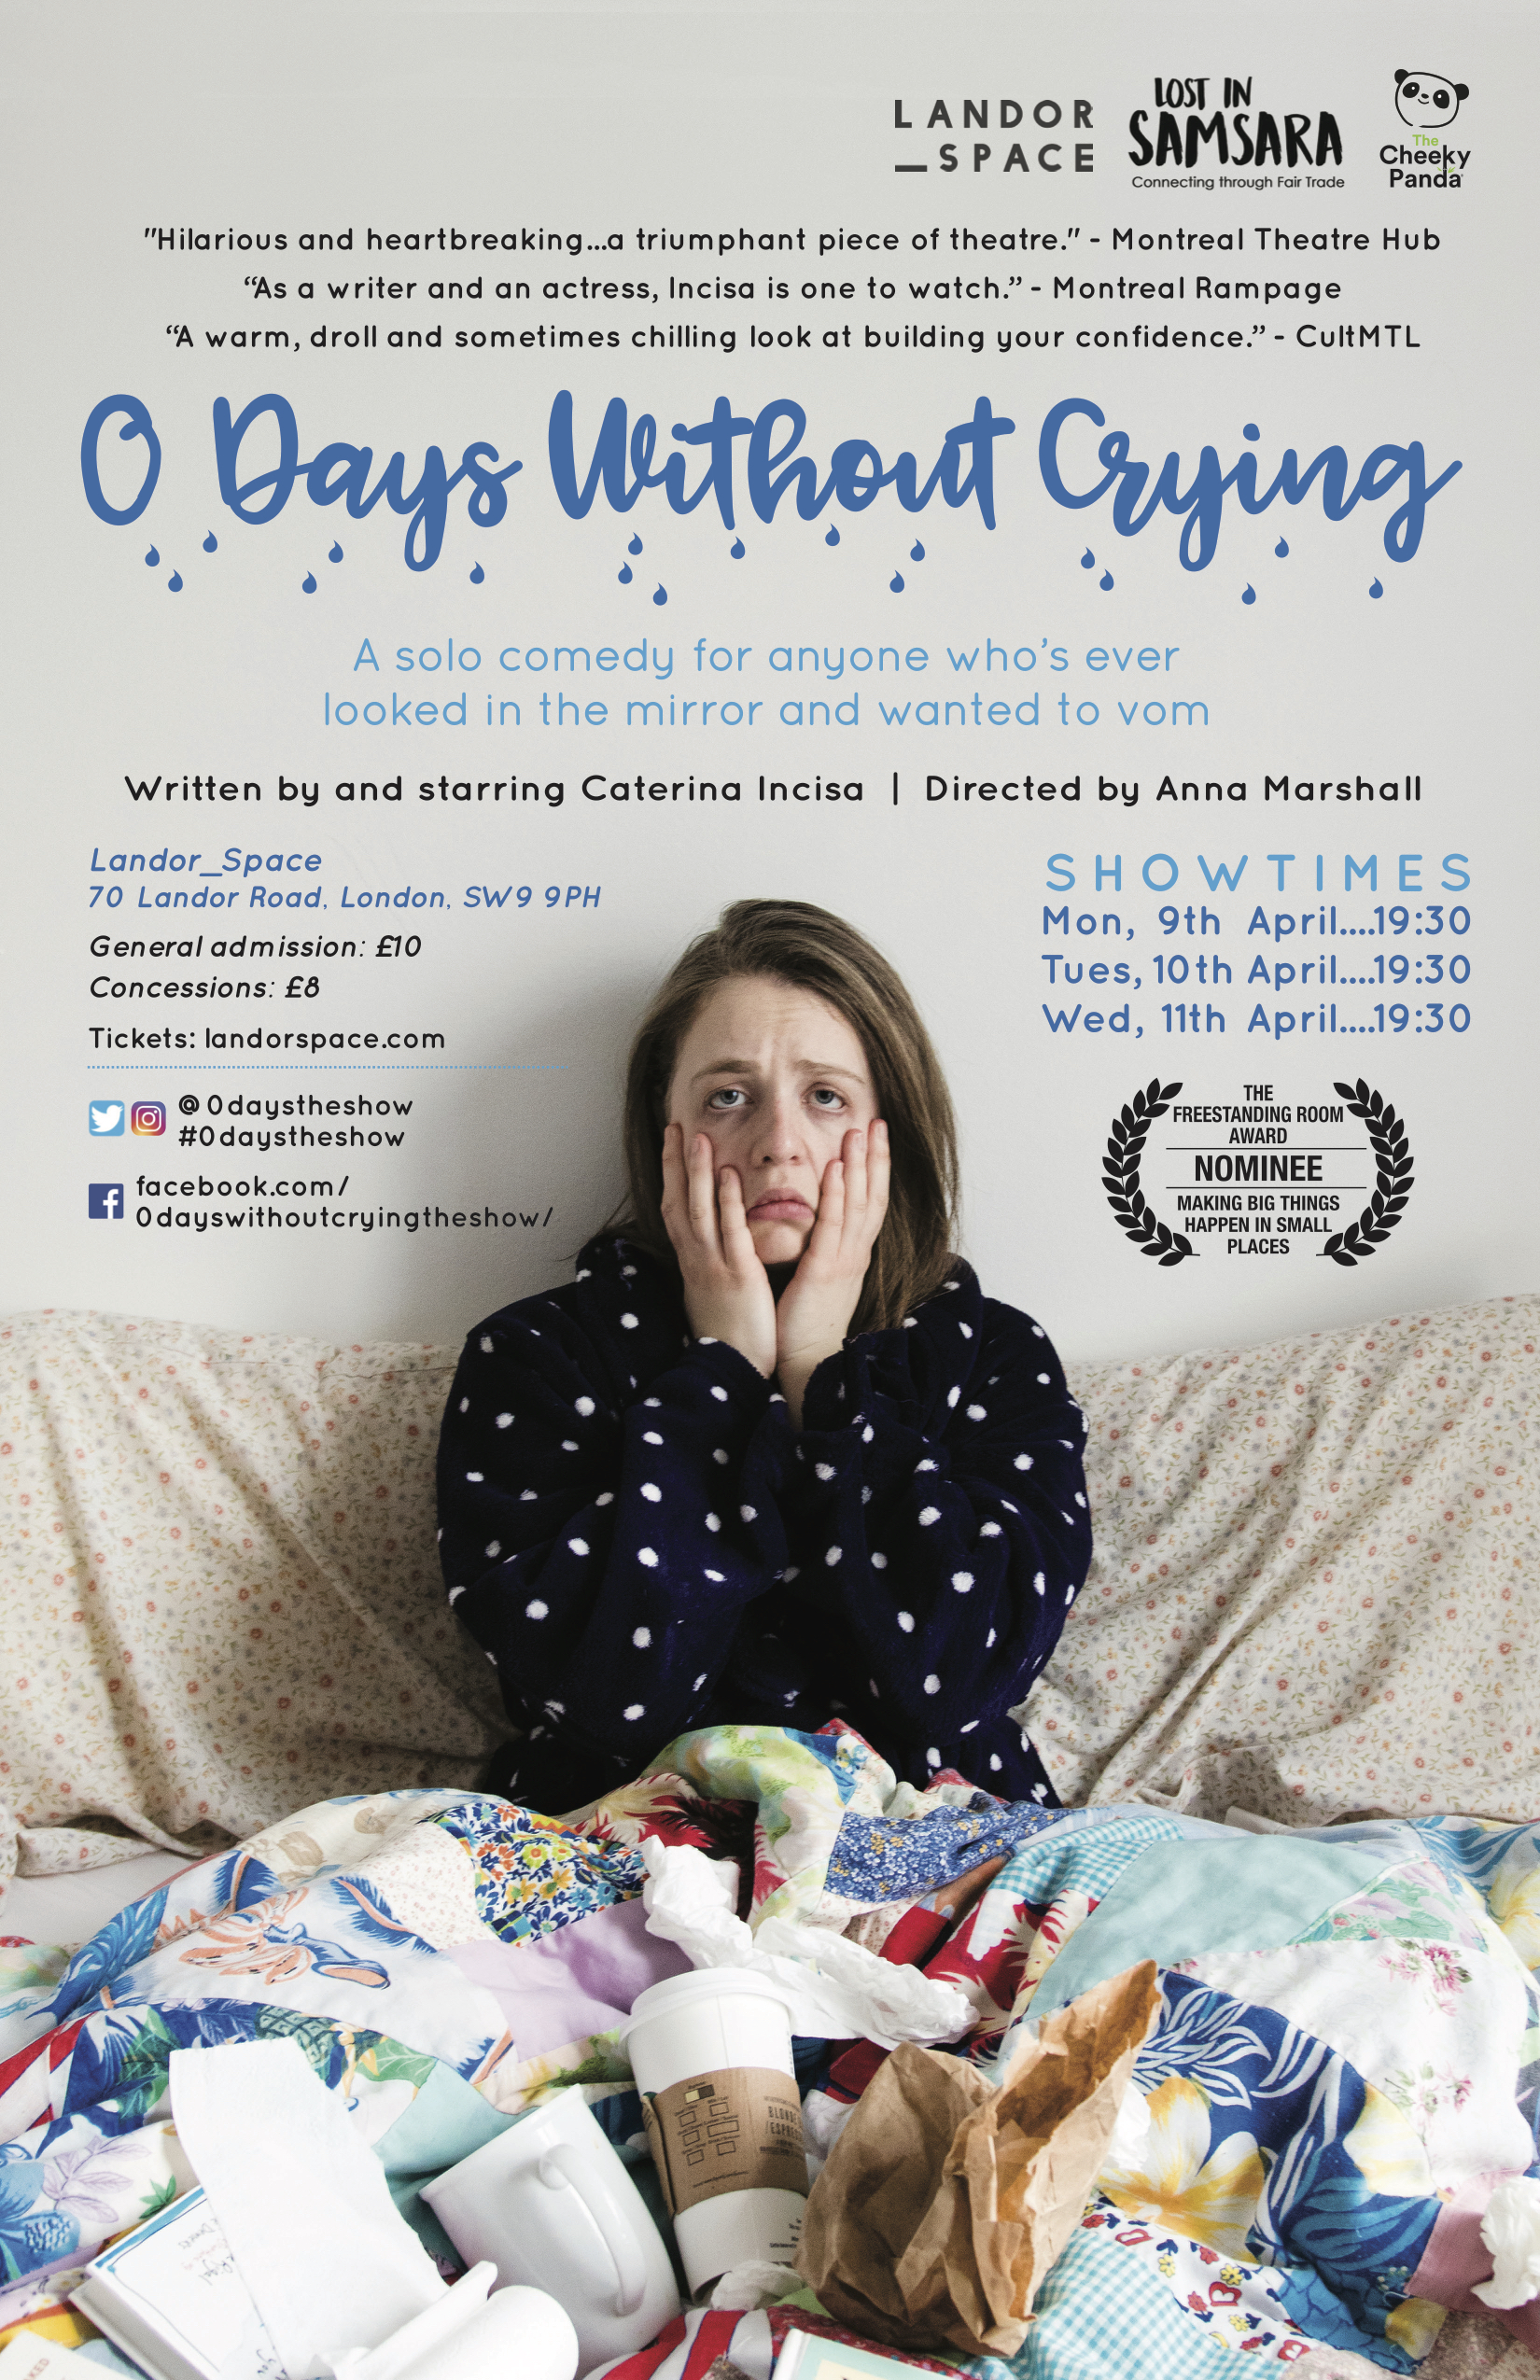 0 Days Without Crying Poster Mar 5 2018.jpg